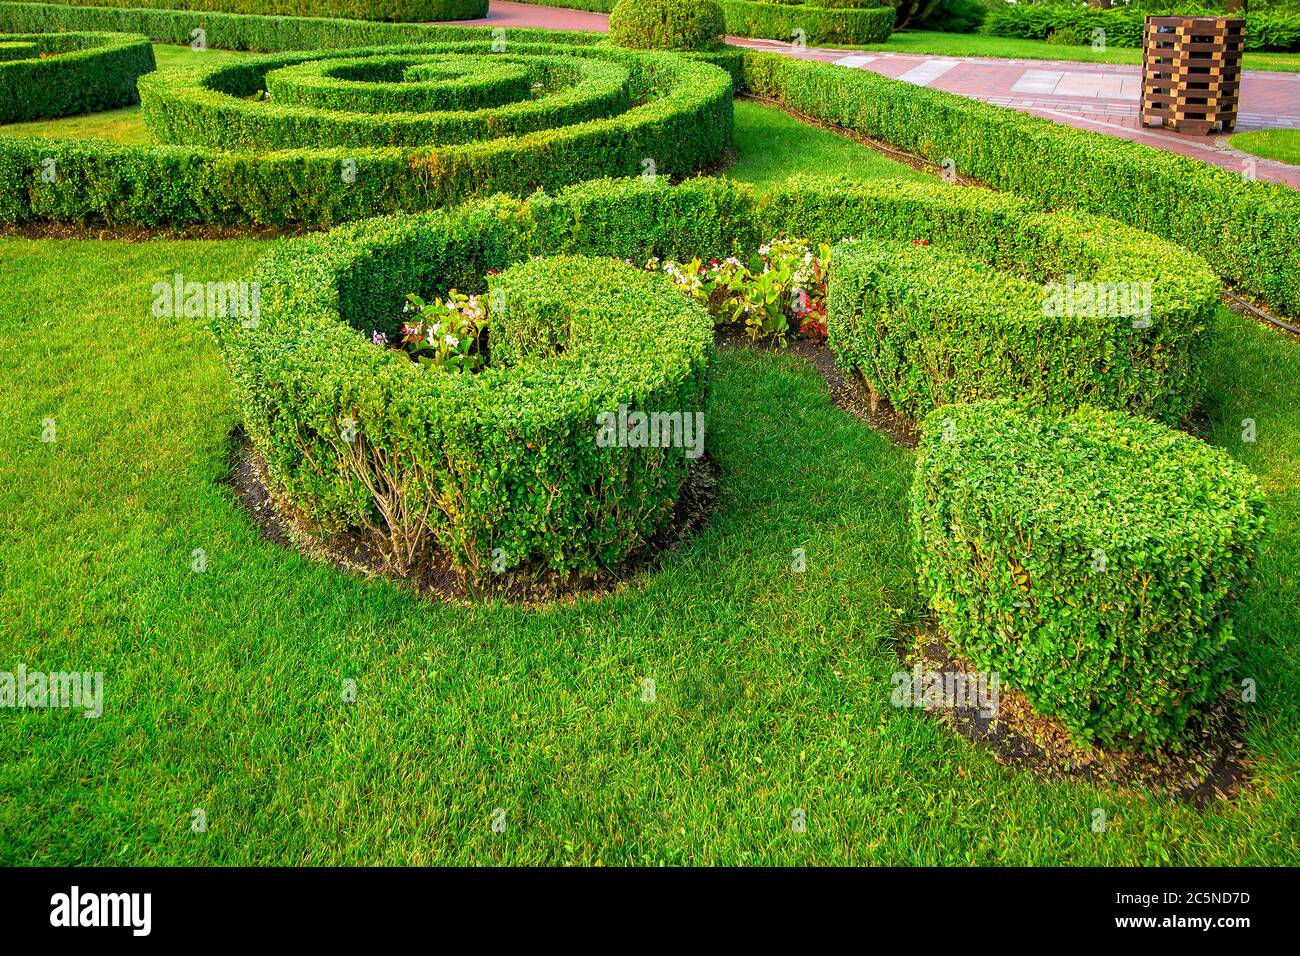 A Garden Landscape Design Of A Hedge Of Boxwood Bushes Growing With Patterns With Green Lawn And Flowers On A Summer Day Stock Photo Alamy